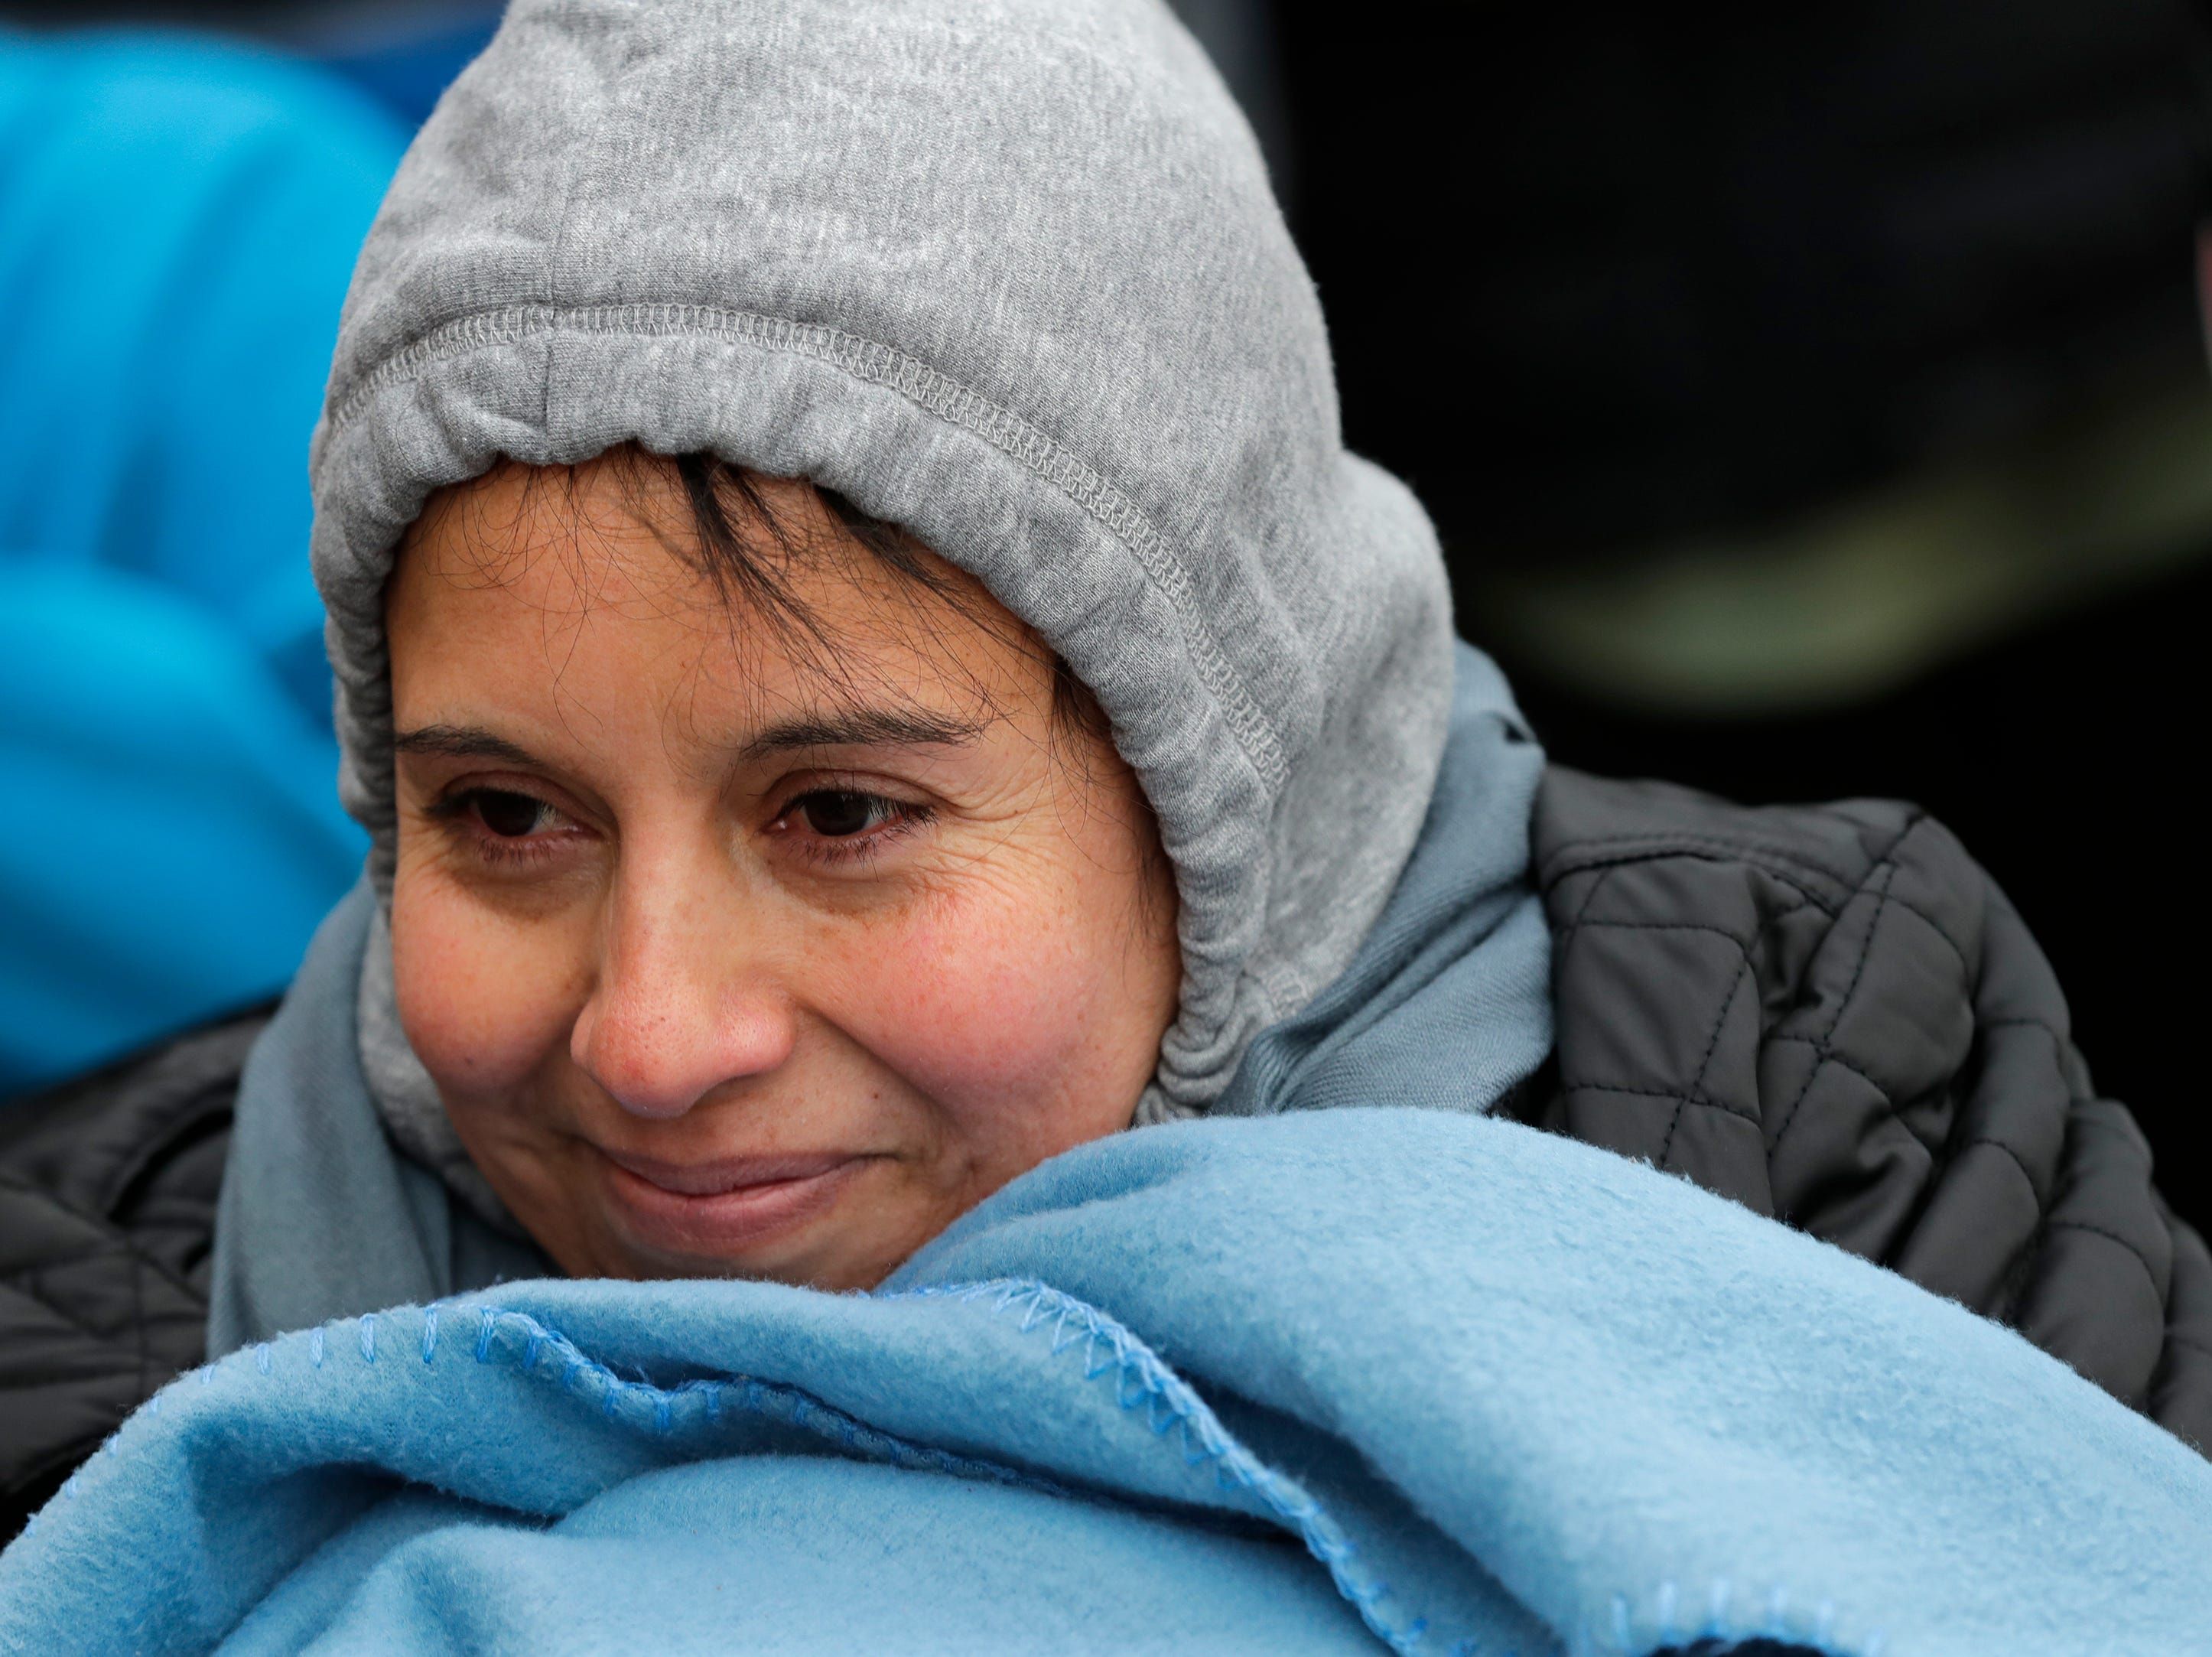 Maria Arrayo of Menasha tries to stay warm while waiting outside in line for Black Friday deals at JCPenney Thursday, November 22, 2018, in Grand Chute, Wis. 